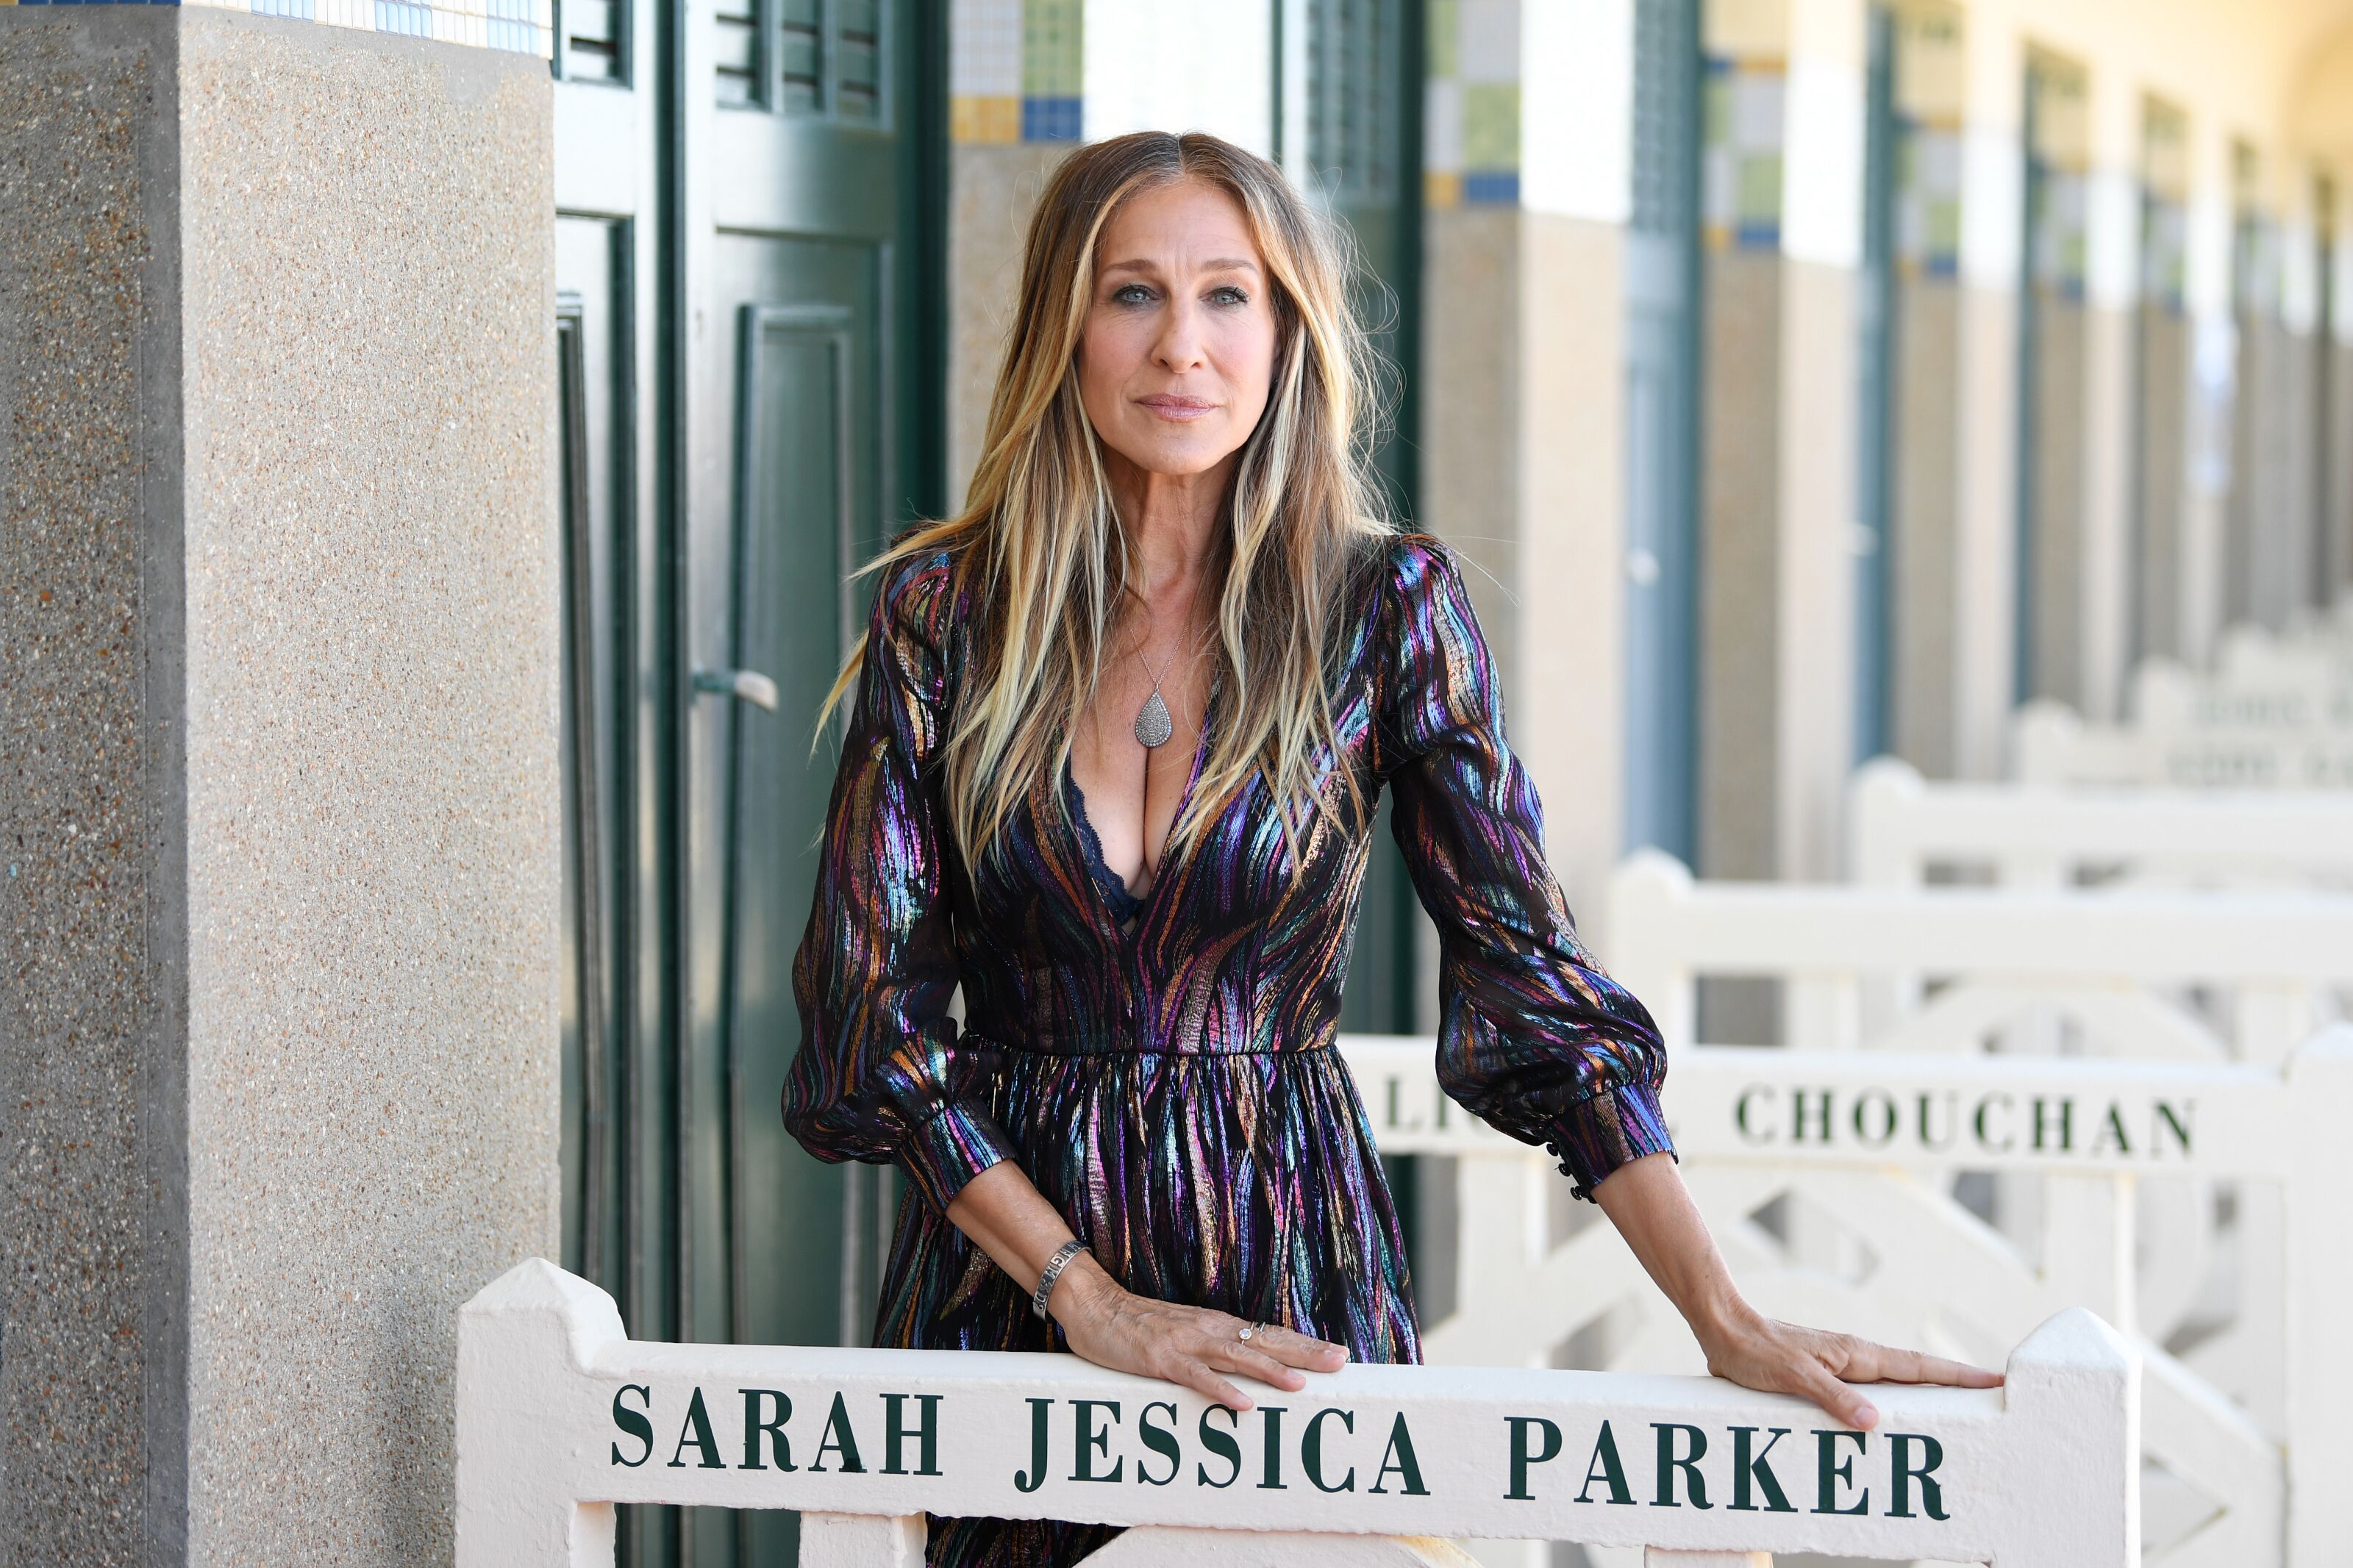 Sarah Jessica Parker is debuting a summer collection of wines with Invino Wines